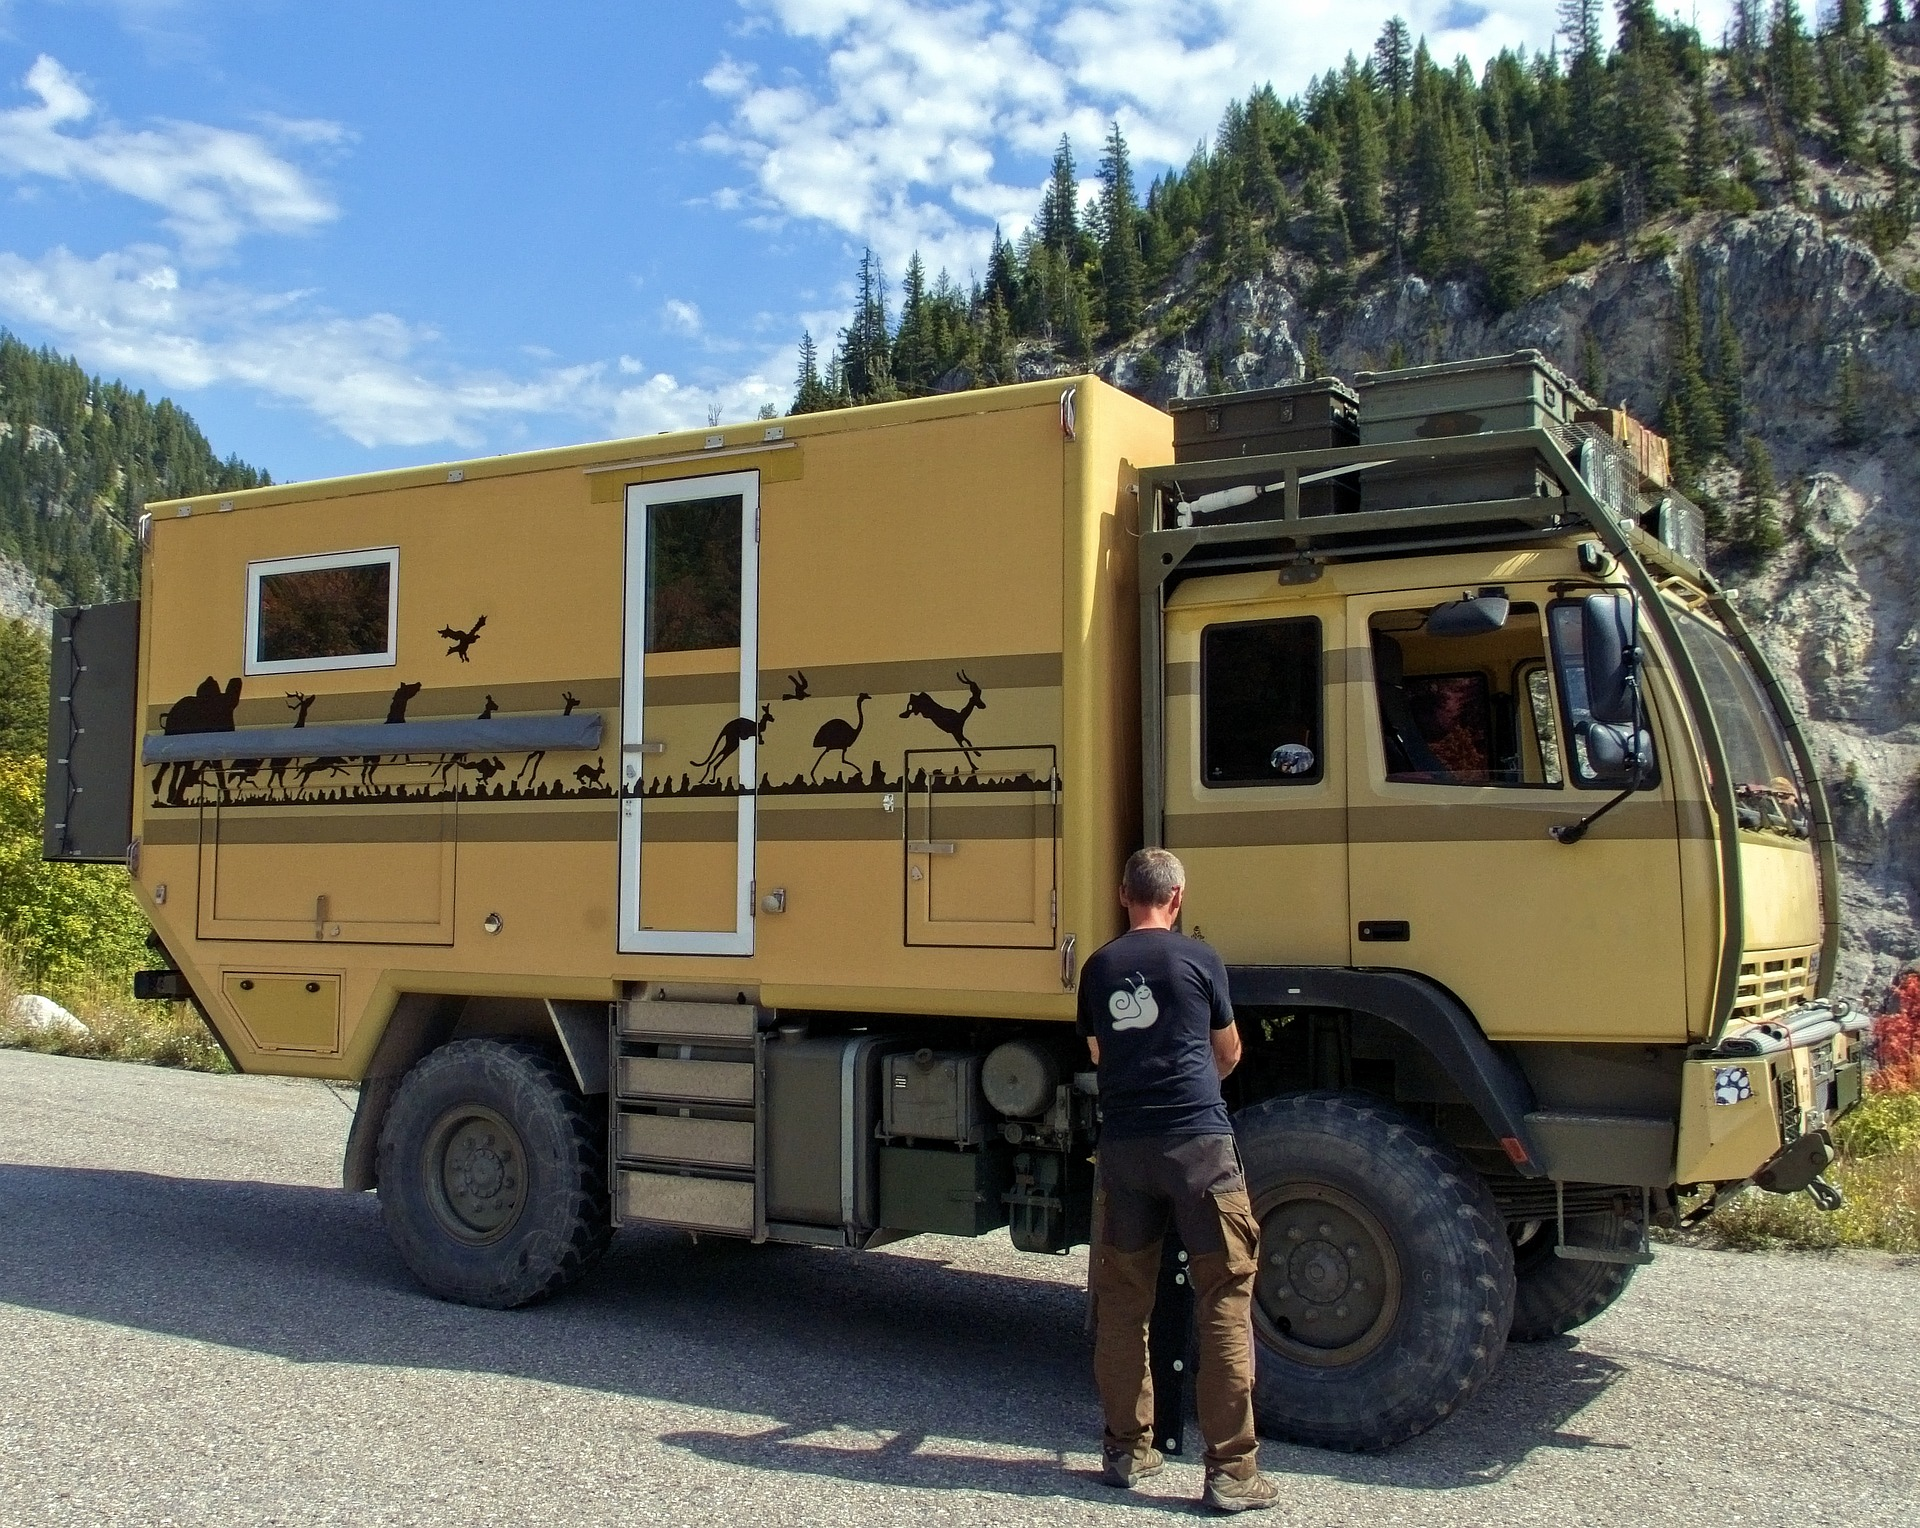 offroad-camping-vehicle-4059578_1920.jpg